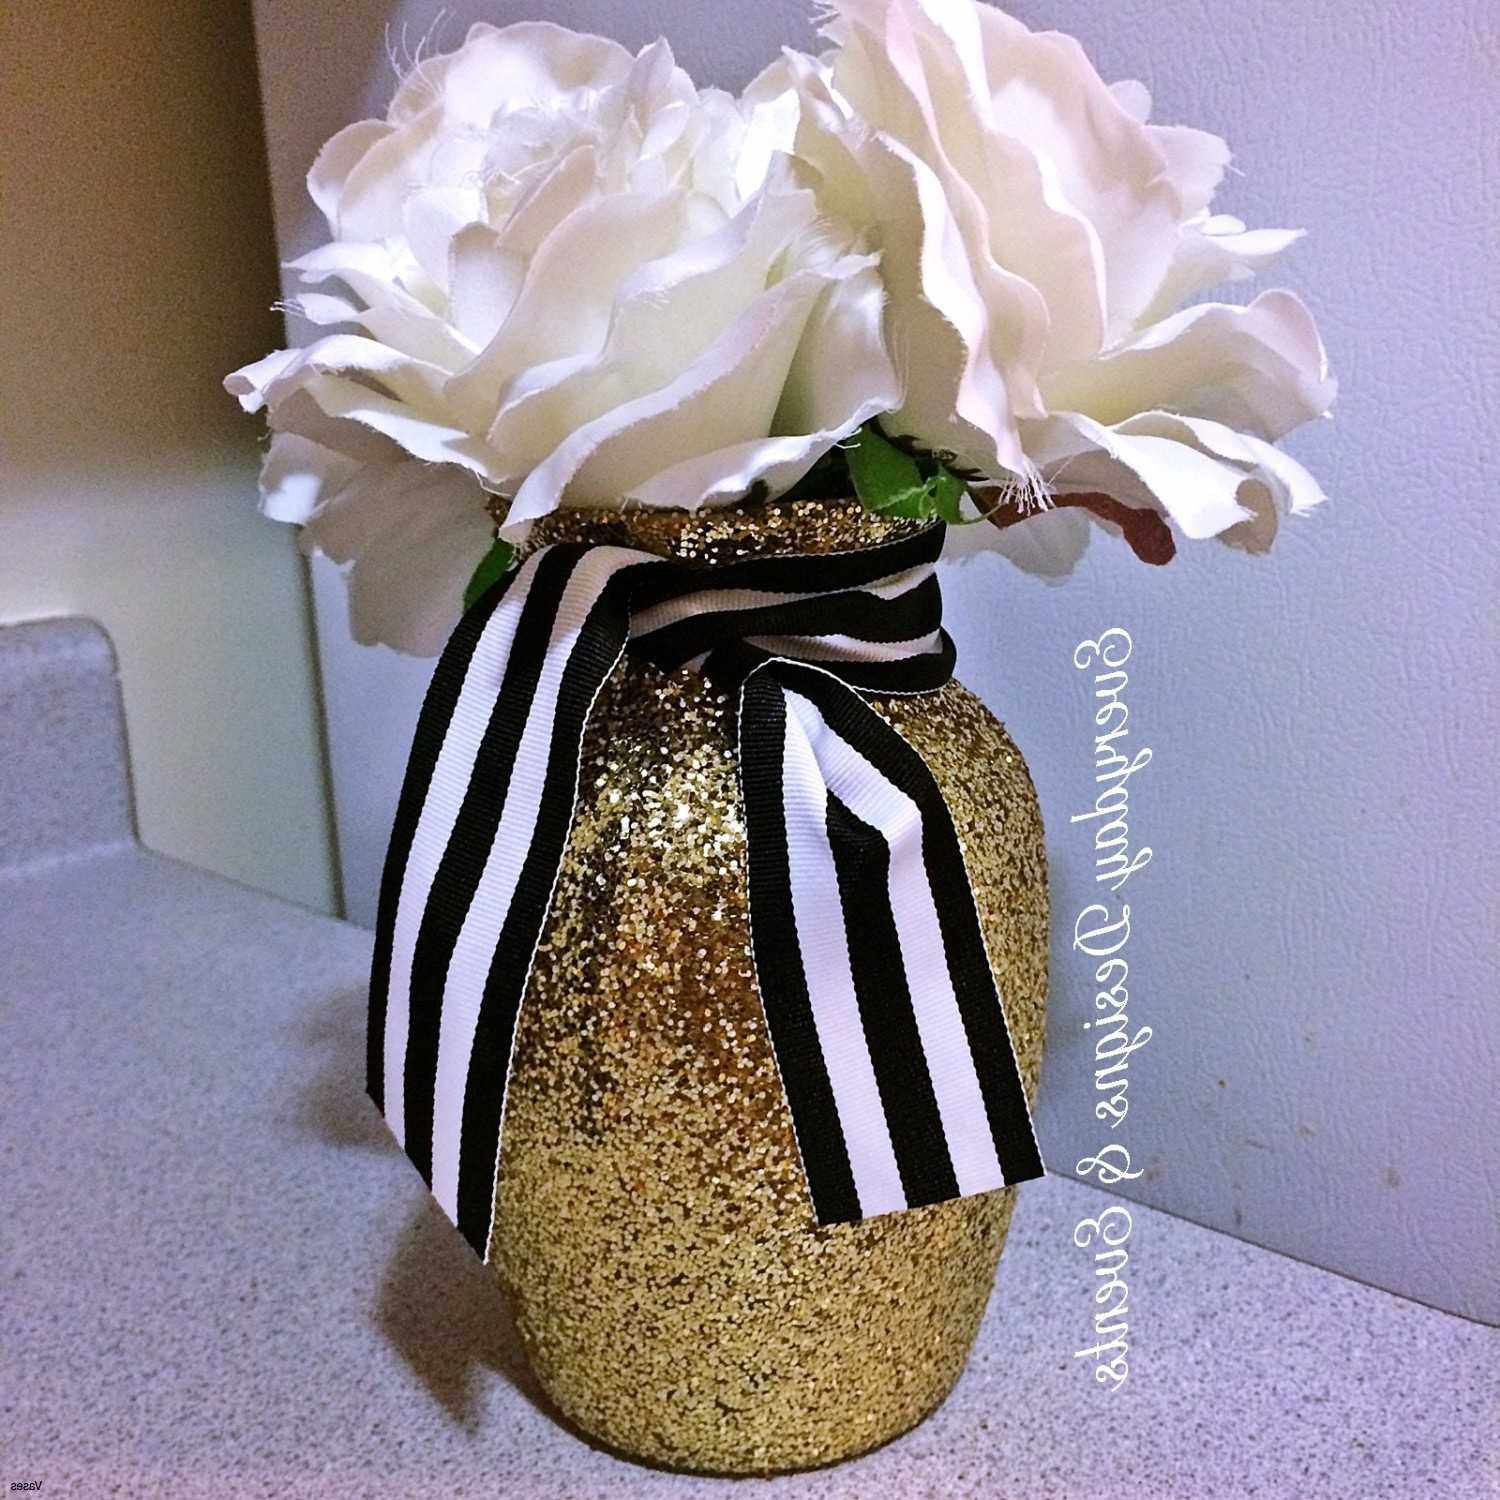 Black Plastic Bud Vases Of Gold Bud Vases Photograph 60 Best Black and Gold Flowers Anna Inside Gold Bud Vases Photograph 60 Best Black and Gold Flowers Anna Wedding Of Gold Bud Vases